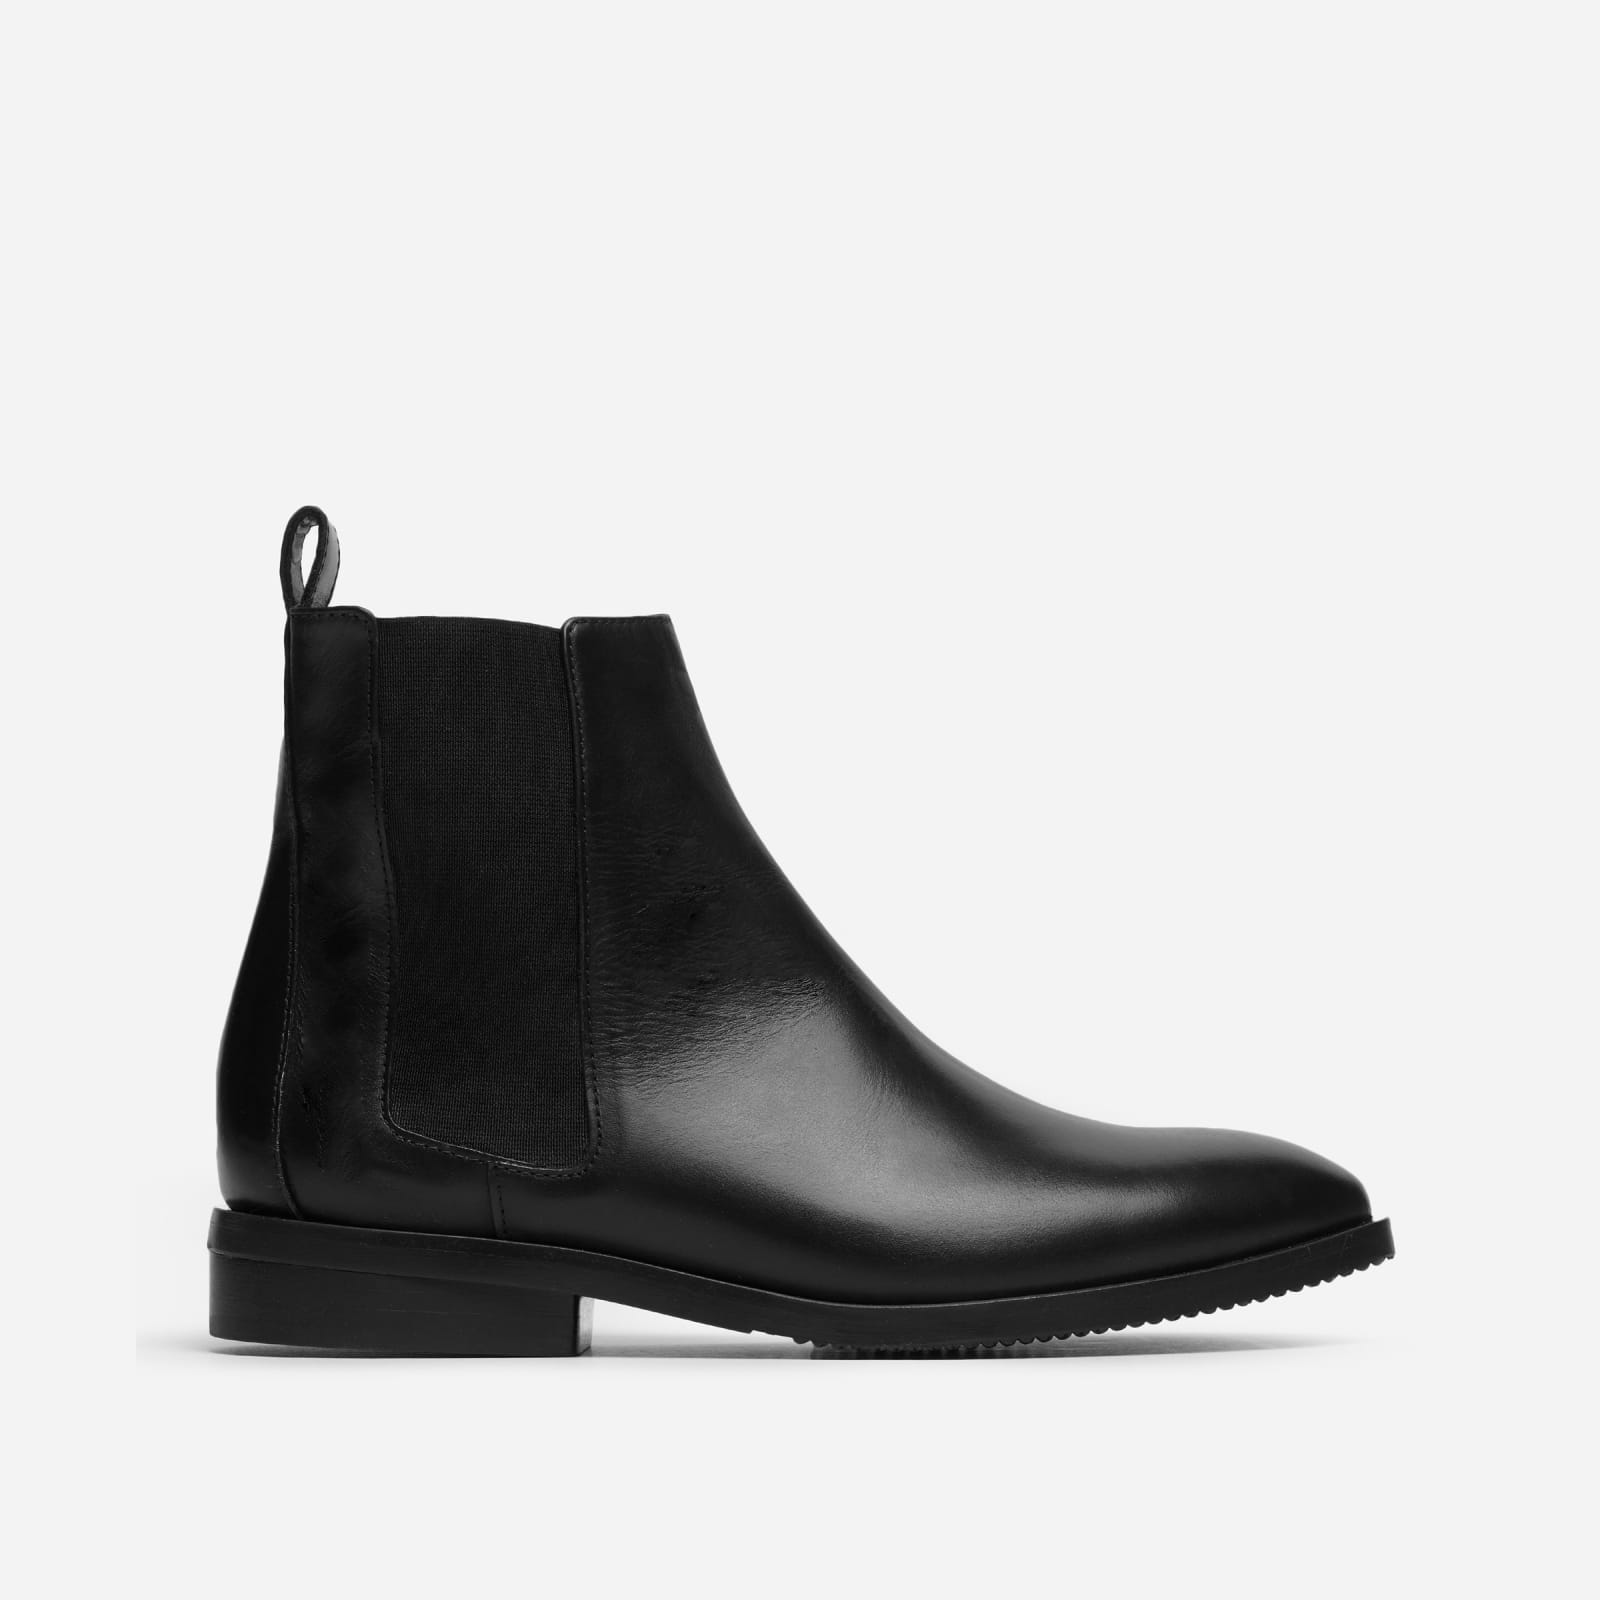 modern chelsea boot by everlane in black, size 5